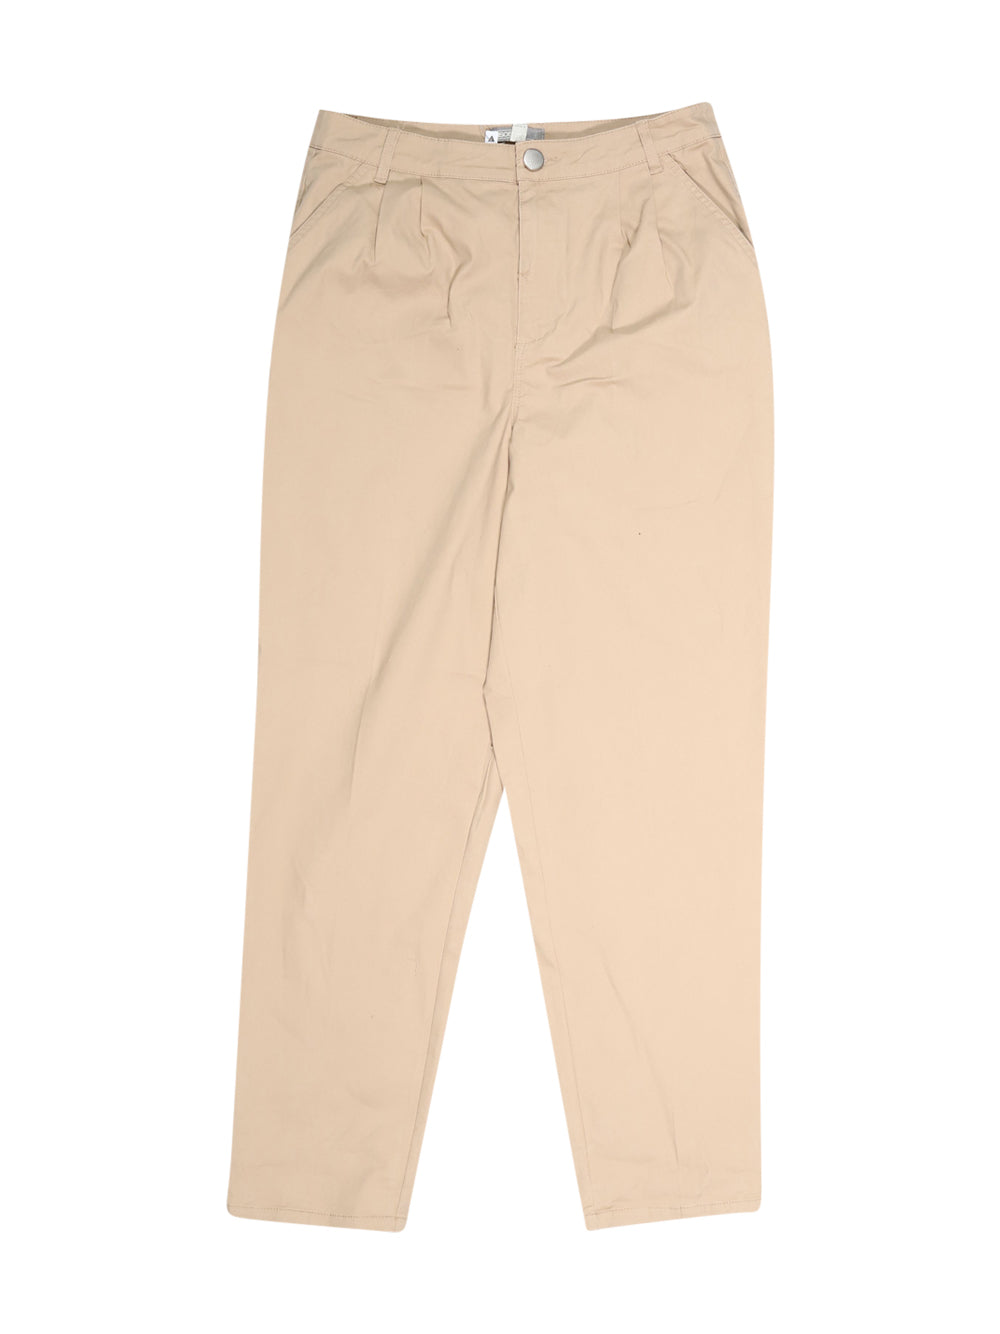 Front photo of Unworn Asos Beige Woman's trousers - size 12/L